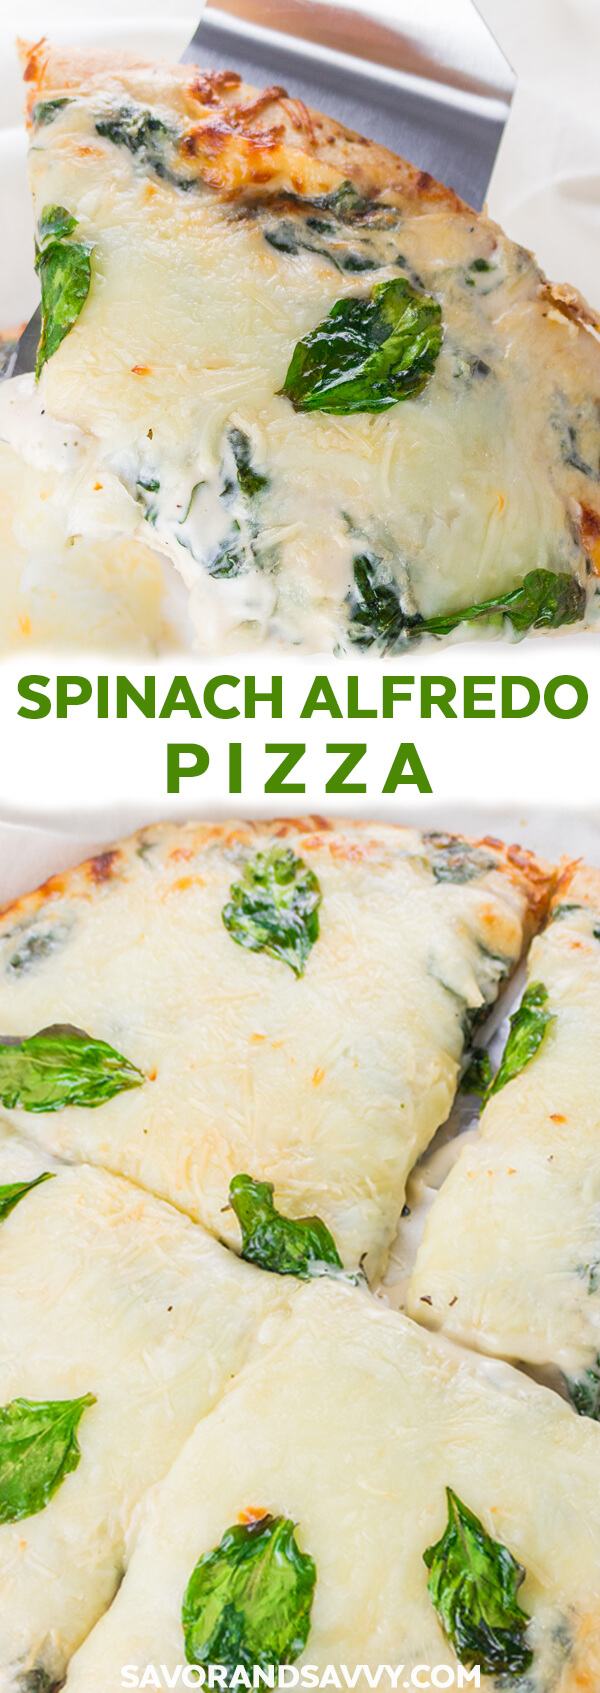 This Spinach Alfredo Pizza recipe is one of the easiest 20 minute meals to make for an easy weeknight dinner!